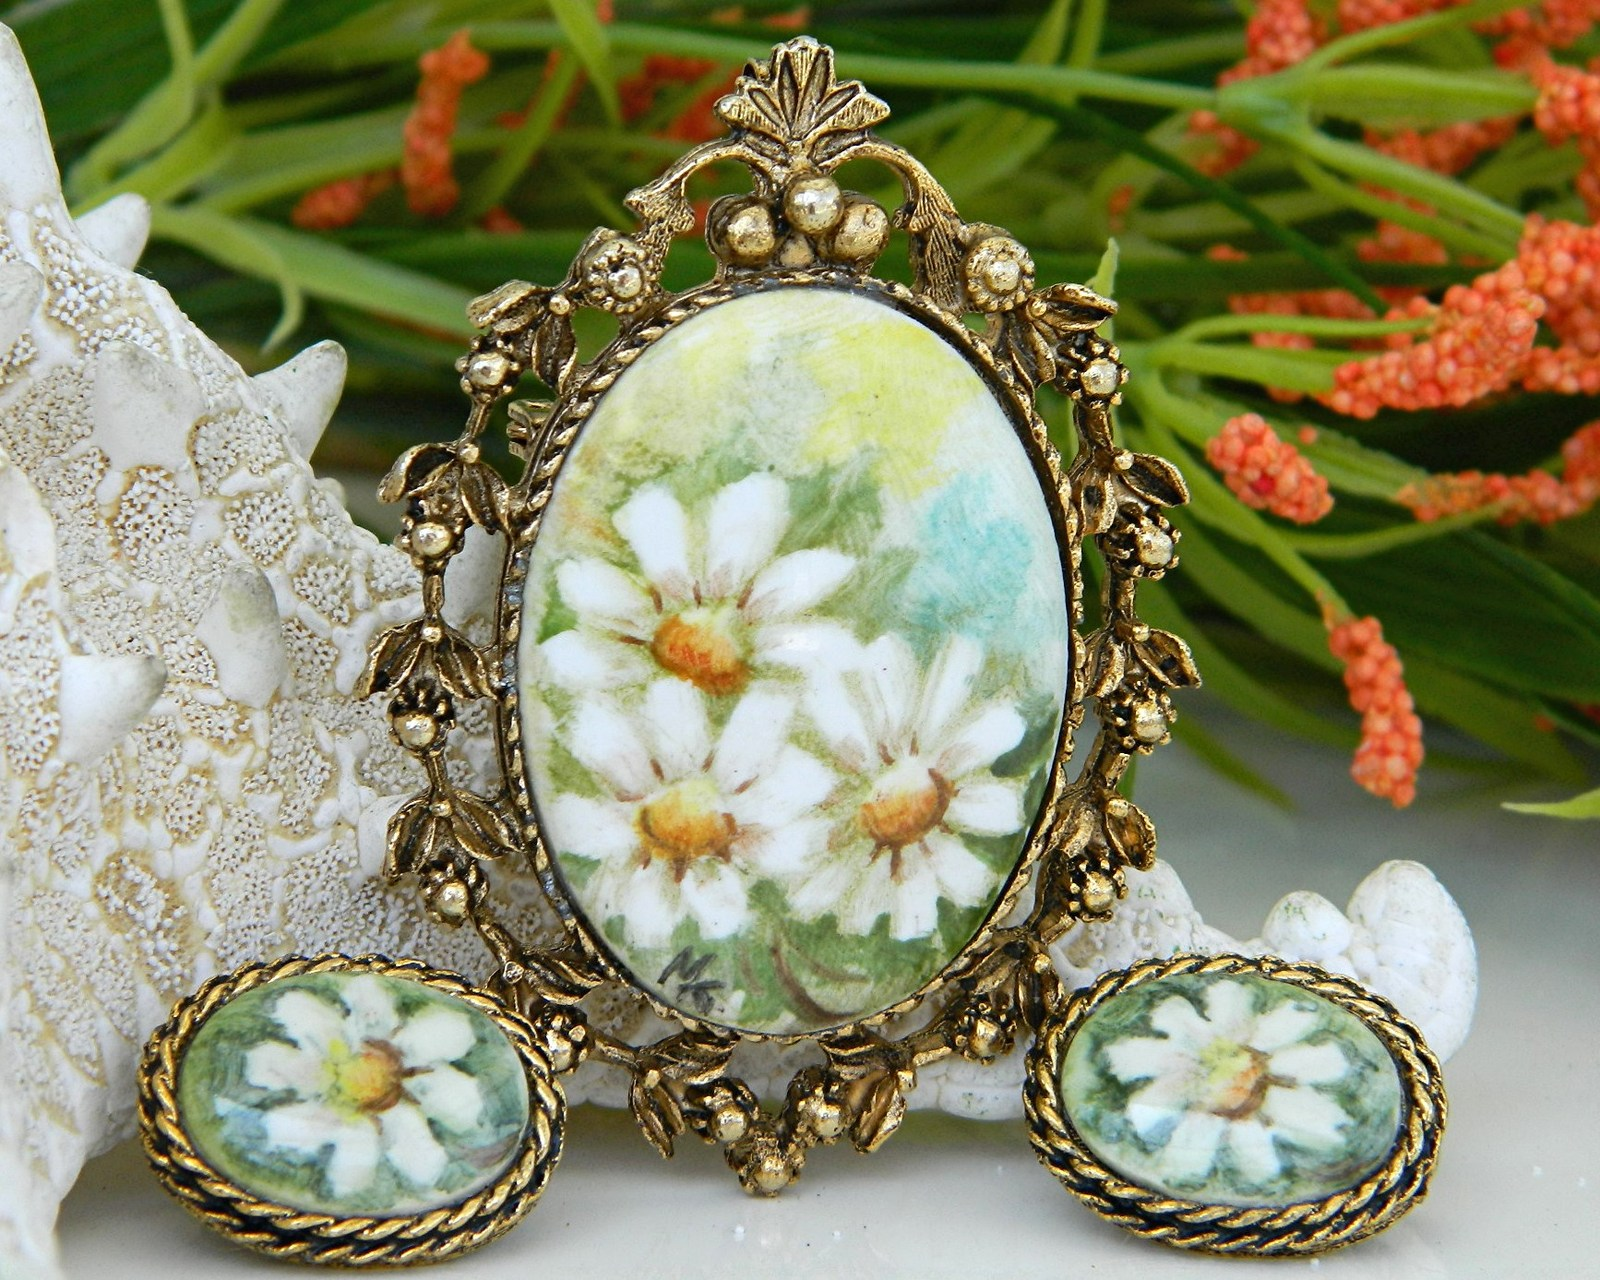 Vintage_hand_painted_porcelain_brooch_pendant_earrings_daisy